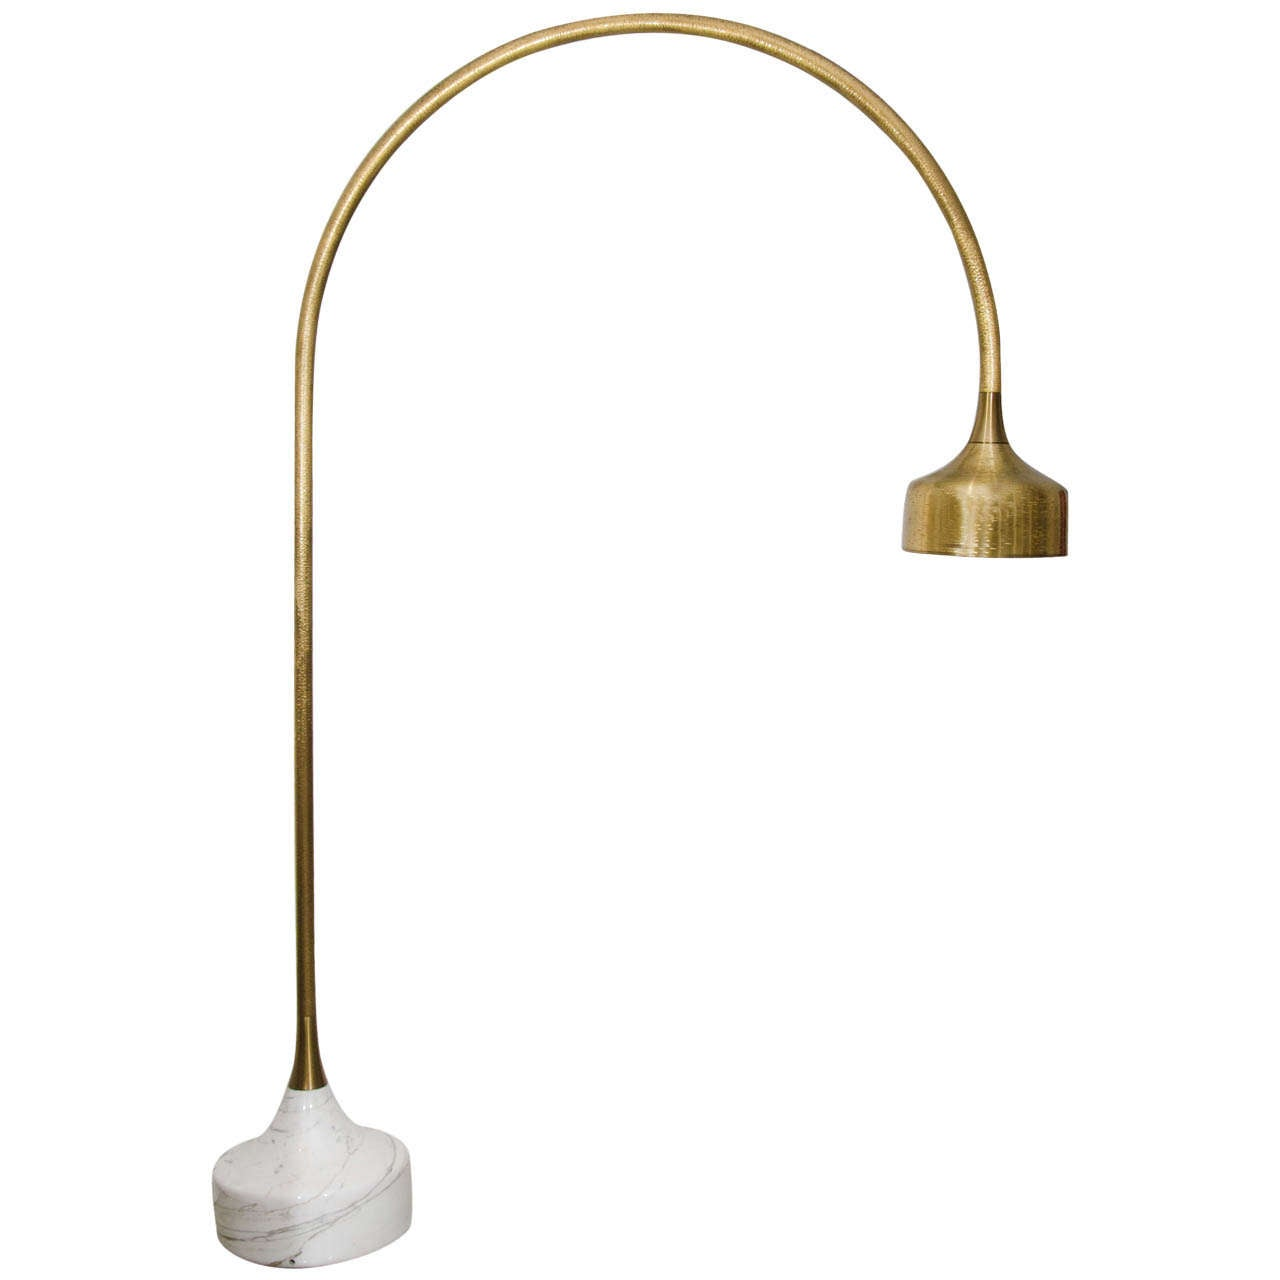 Vintage brass and marble three arm arc floor lamp at 1stdibs - Luciano Frigerio Marble Base Golden Arc Floor Lamp 1